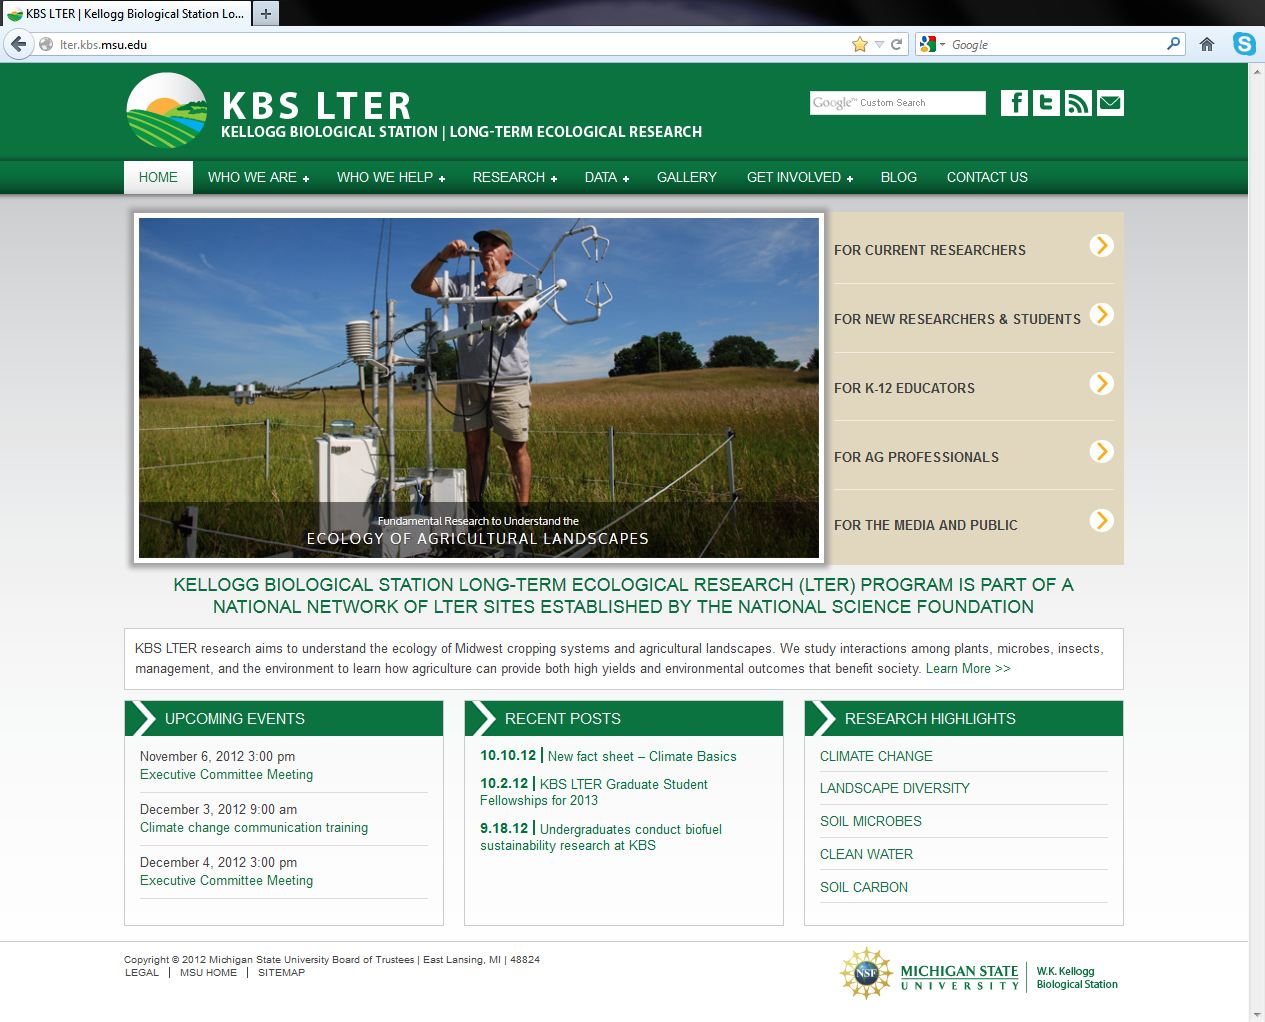 Newly redesigned KBS LTER website